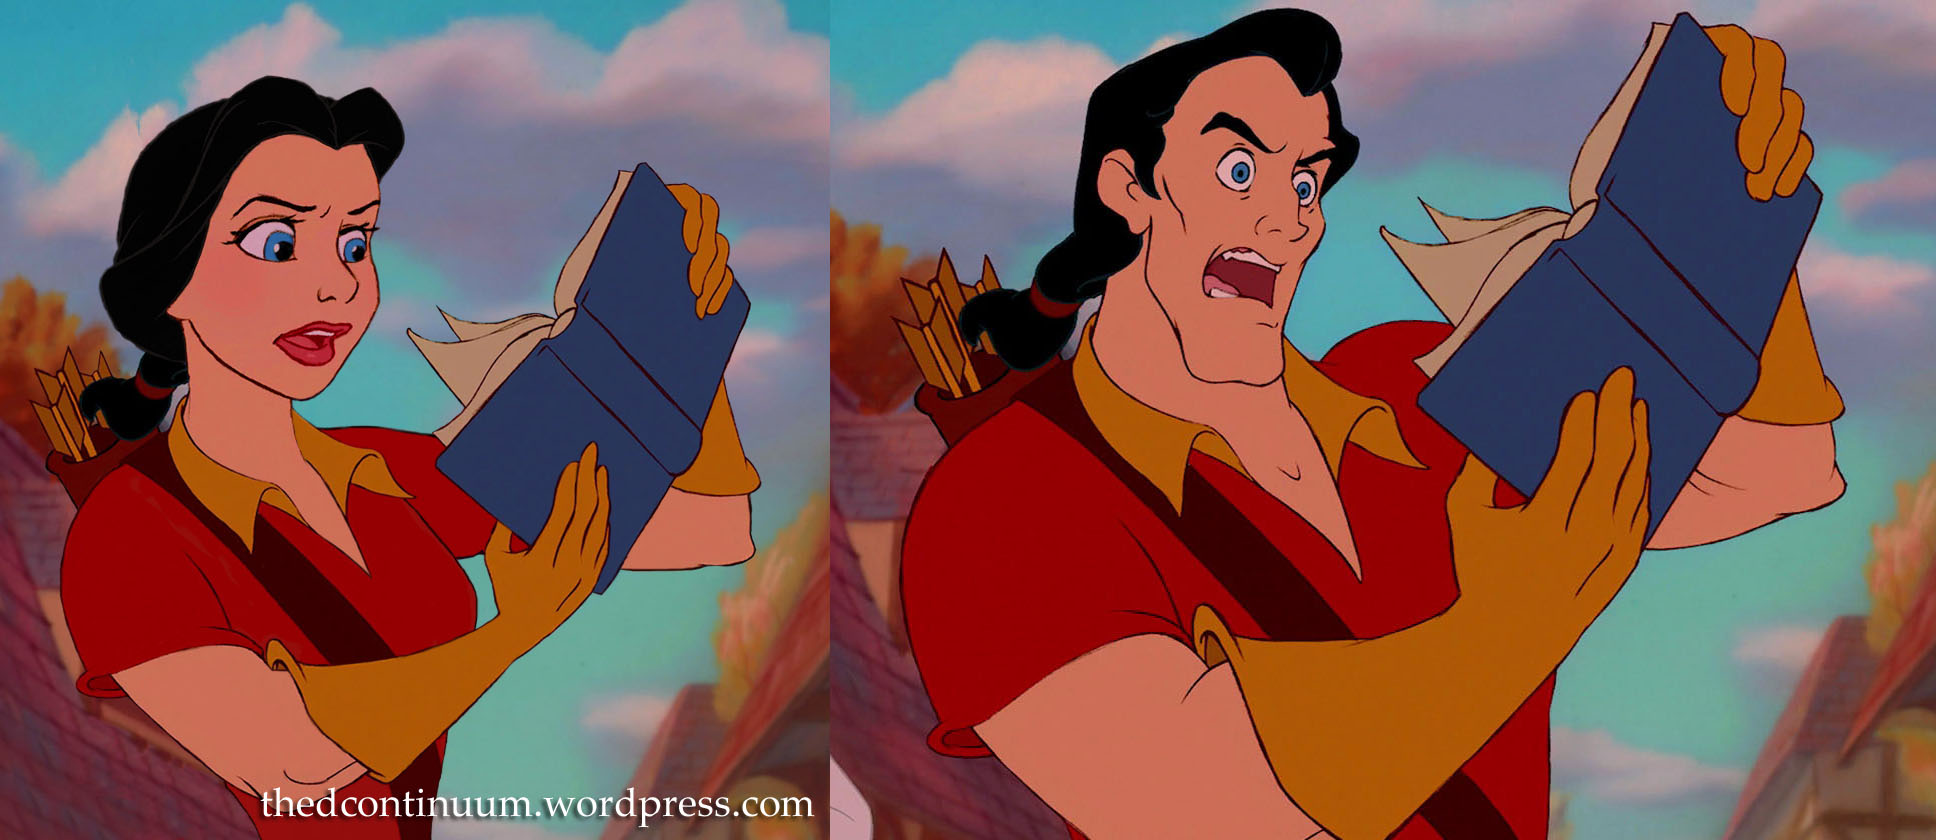 belle-and-gaston-gender-swap-before-and-after.jpg